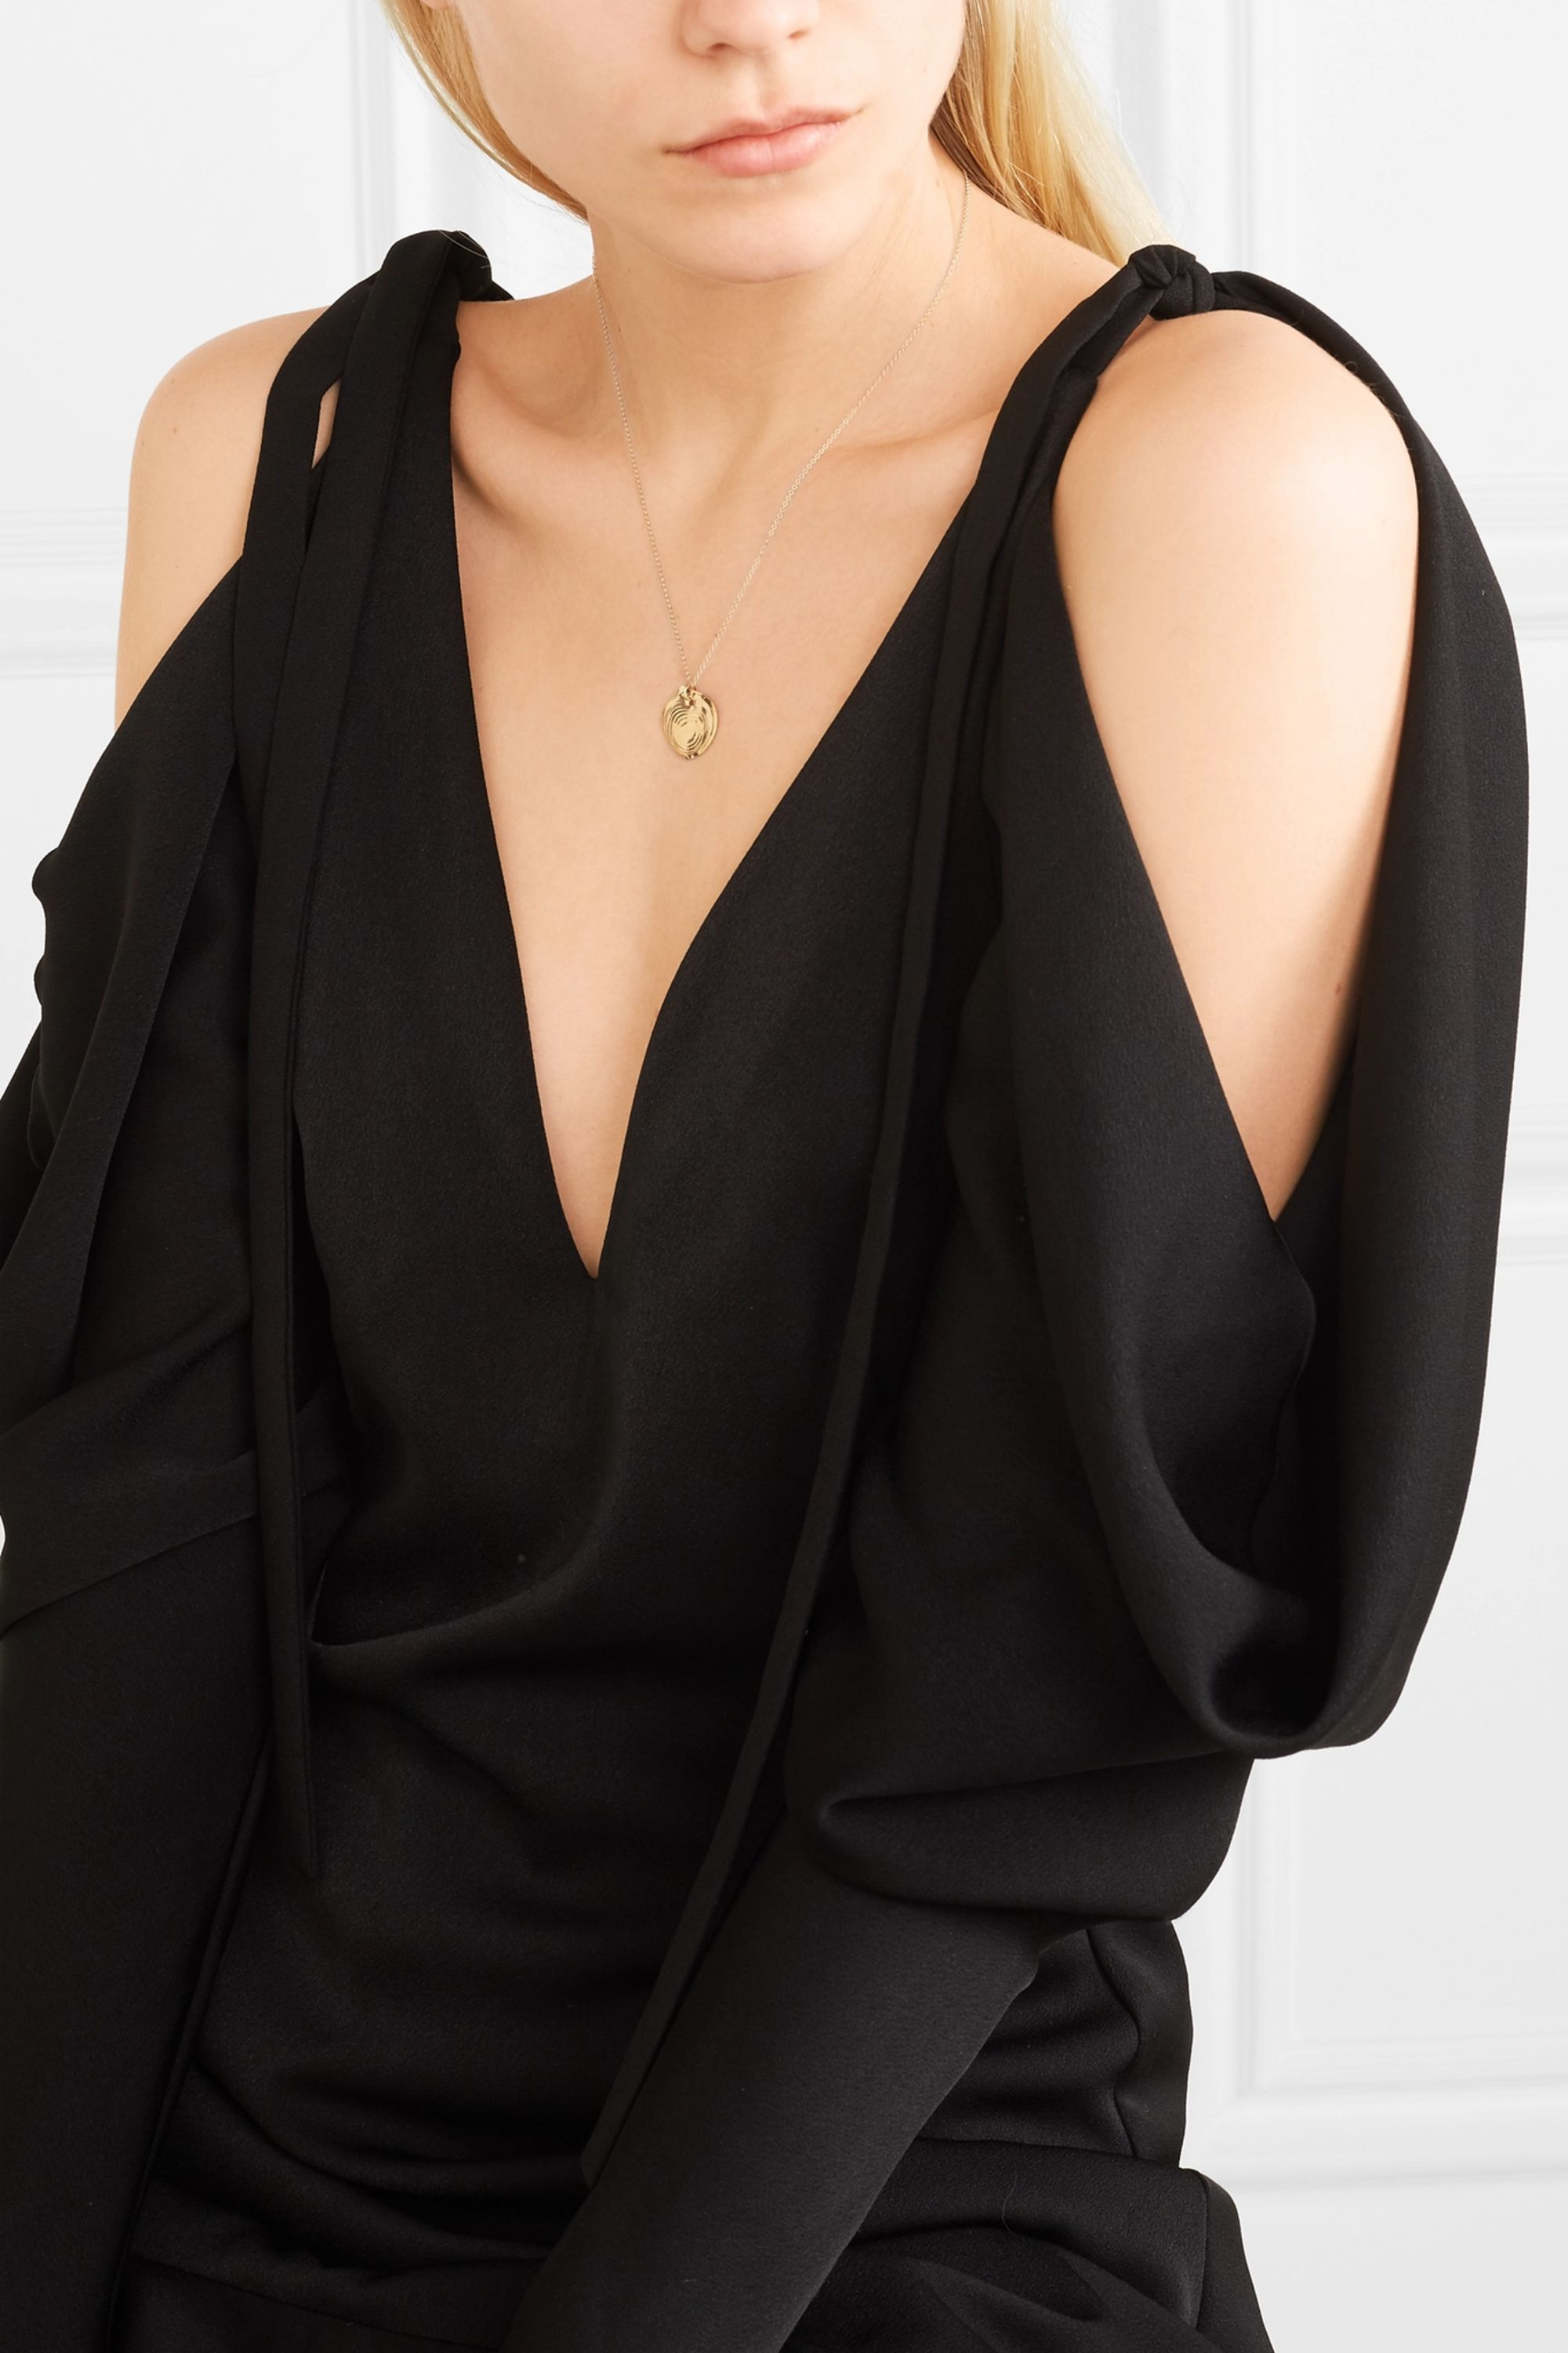 Leigh Miller Puddle gold-plated necklace